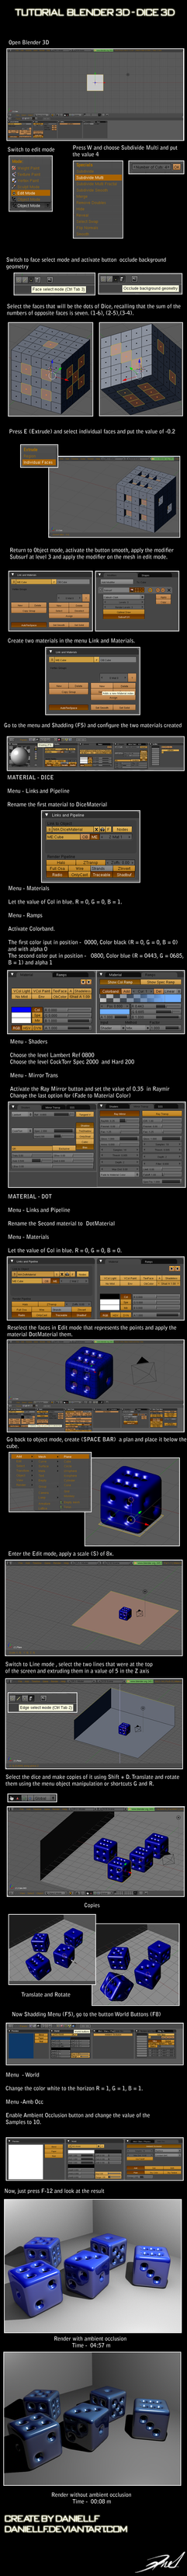 Blender 2.49 - Dice 3D by daniellf